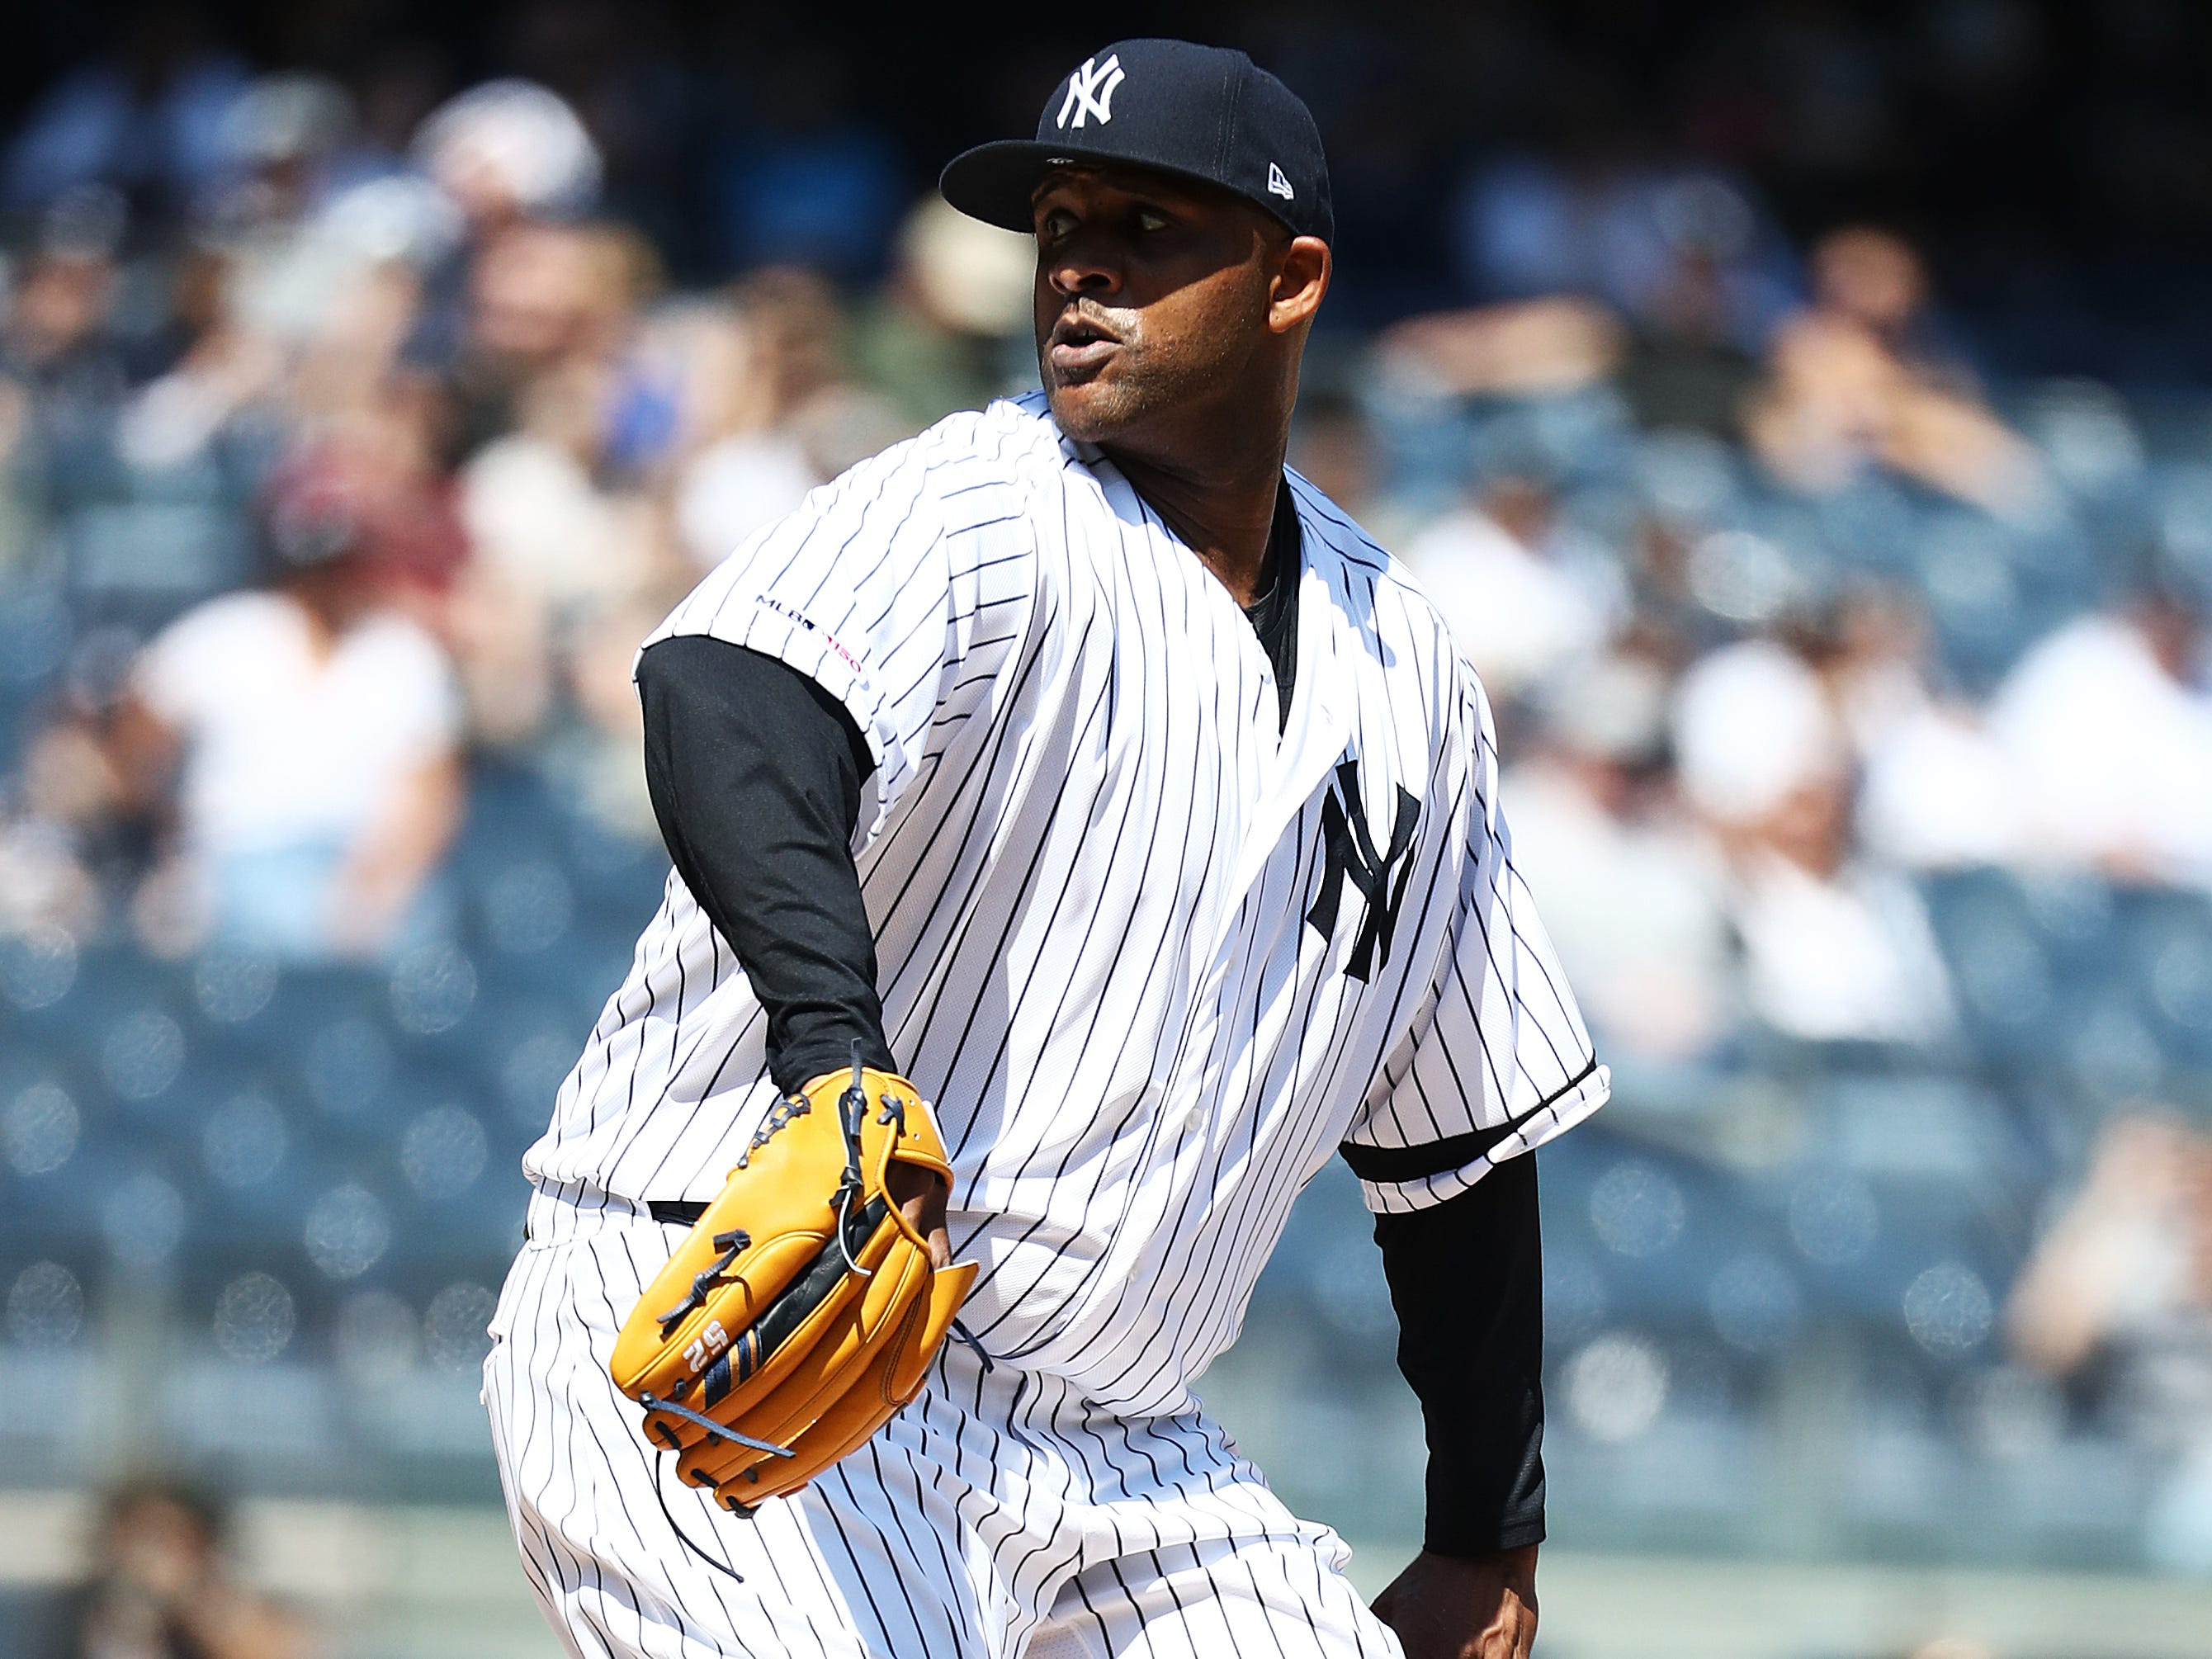 CC Sabathia #52 of the New York Yankees makes his first start of his last season in Major League Basebal against the Chicago White Sox during their game at Yankee Stadium on April 13, 2019 in New York City.